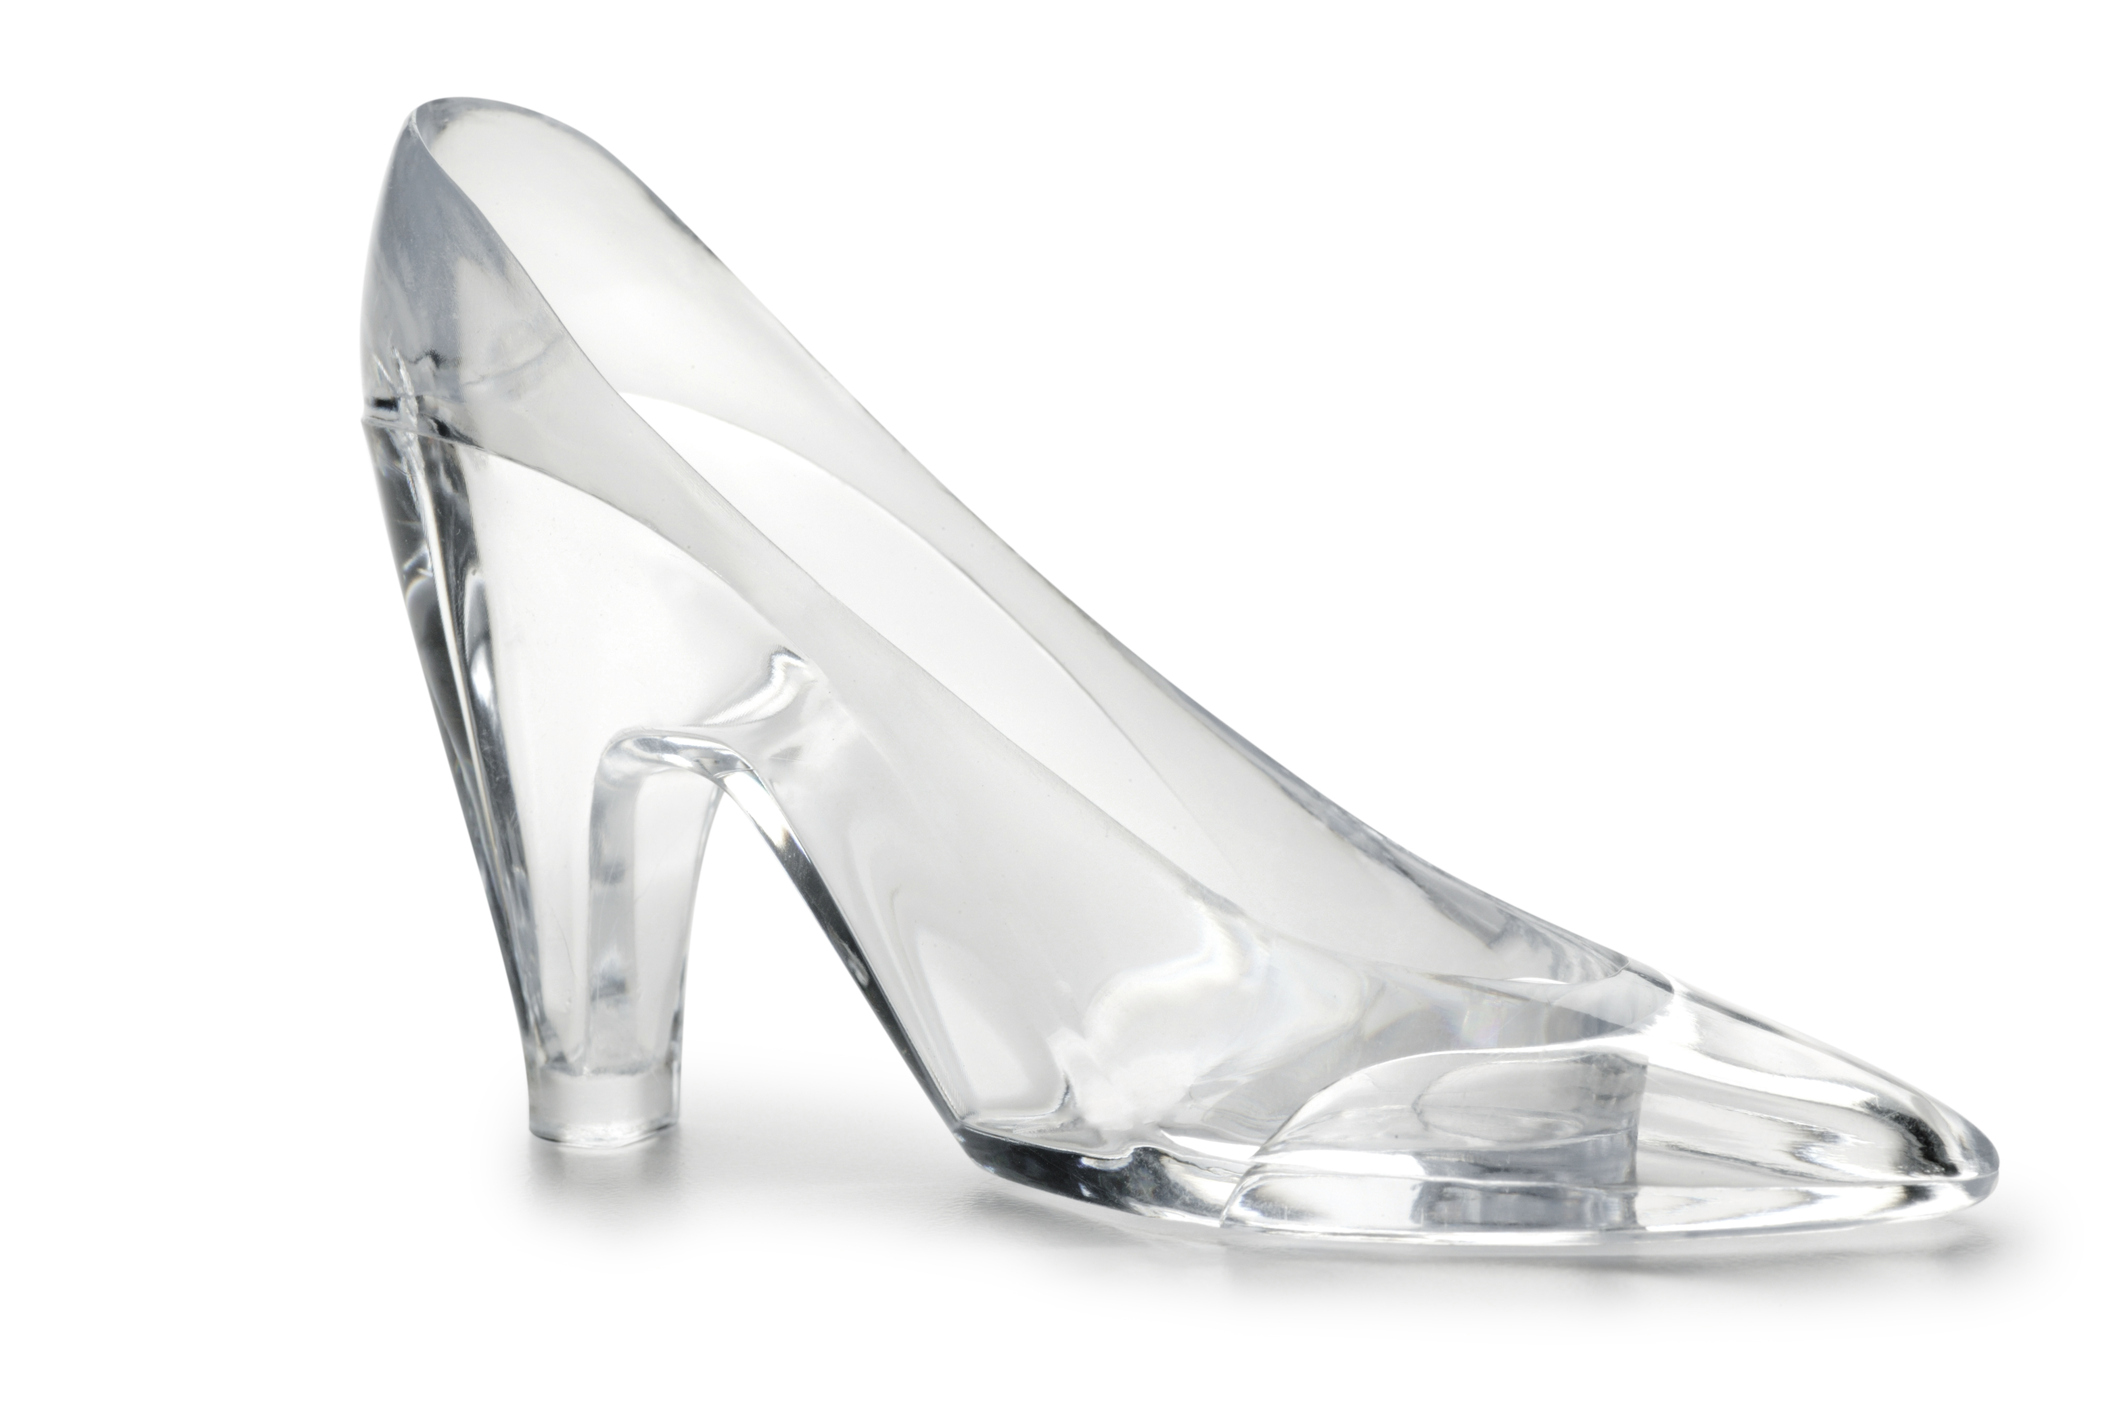 A glass slipper on white with soft shadow